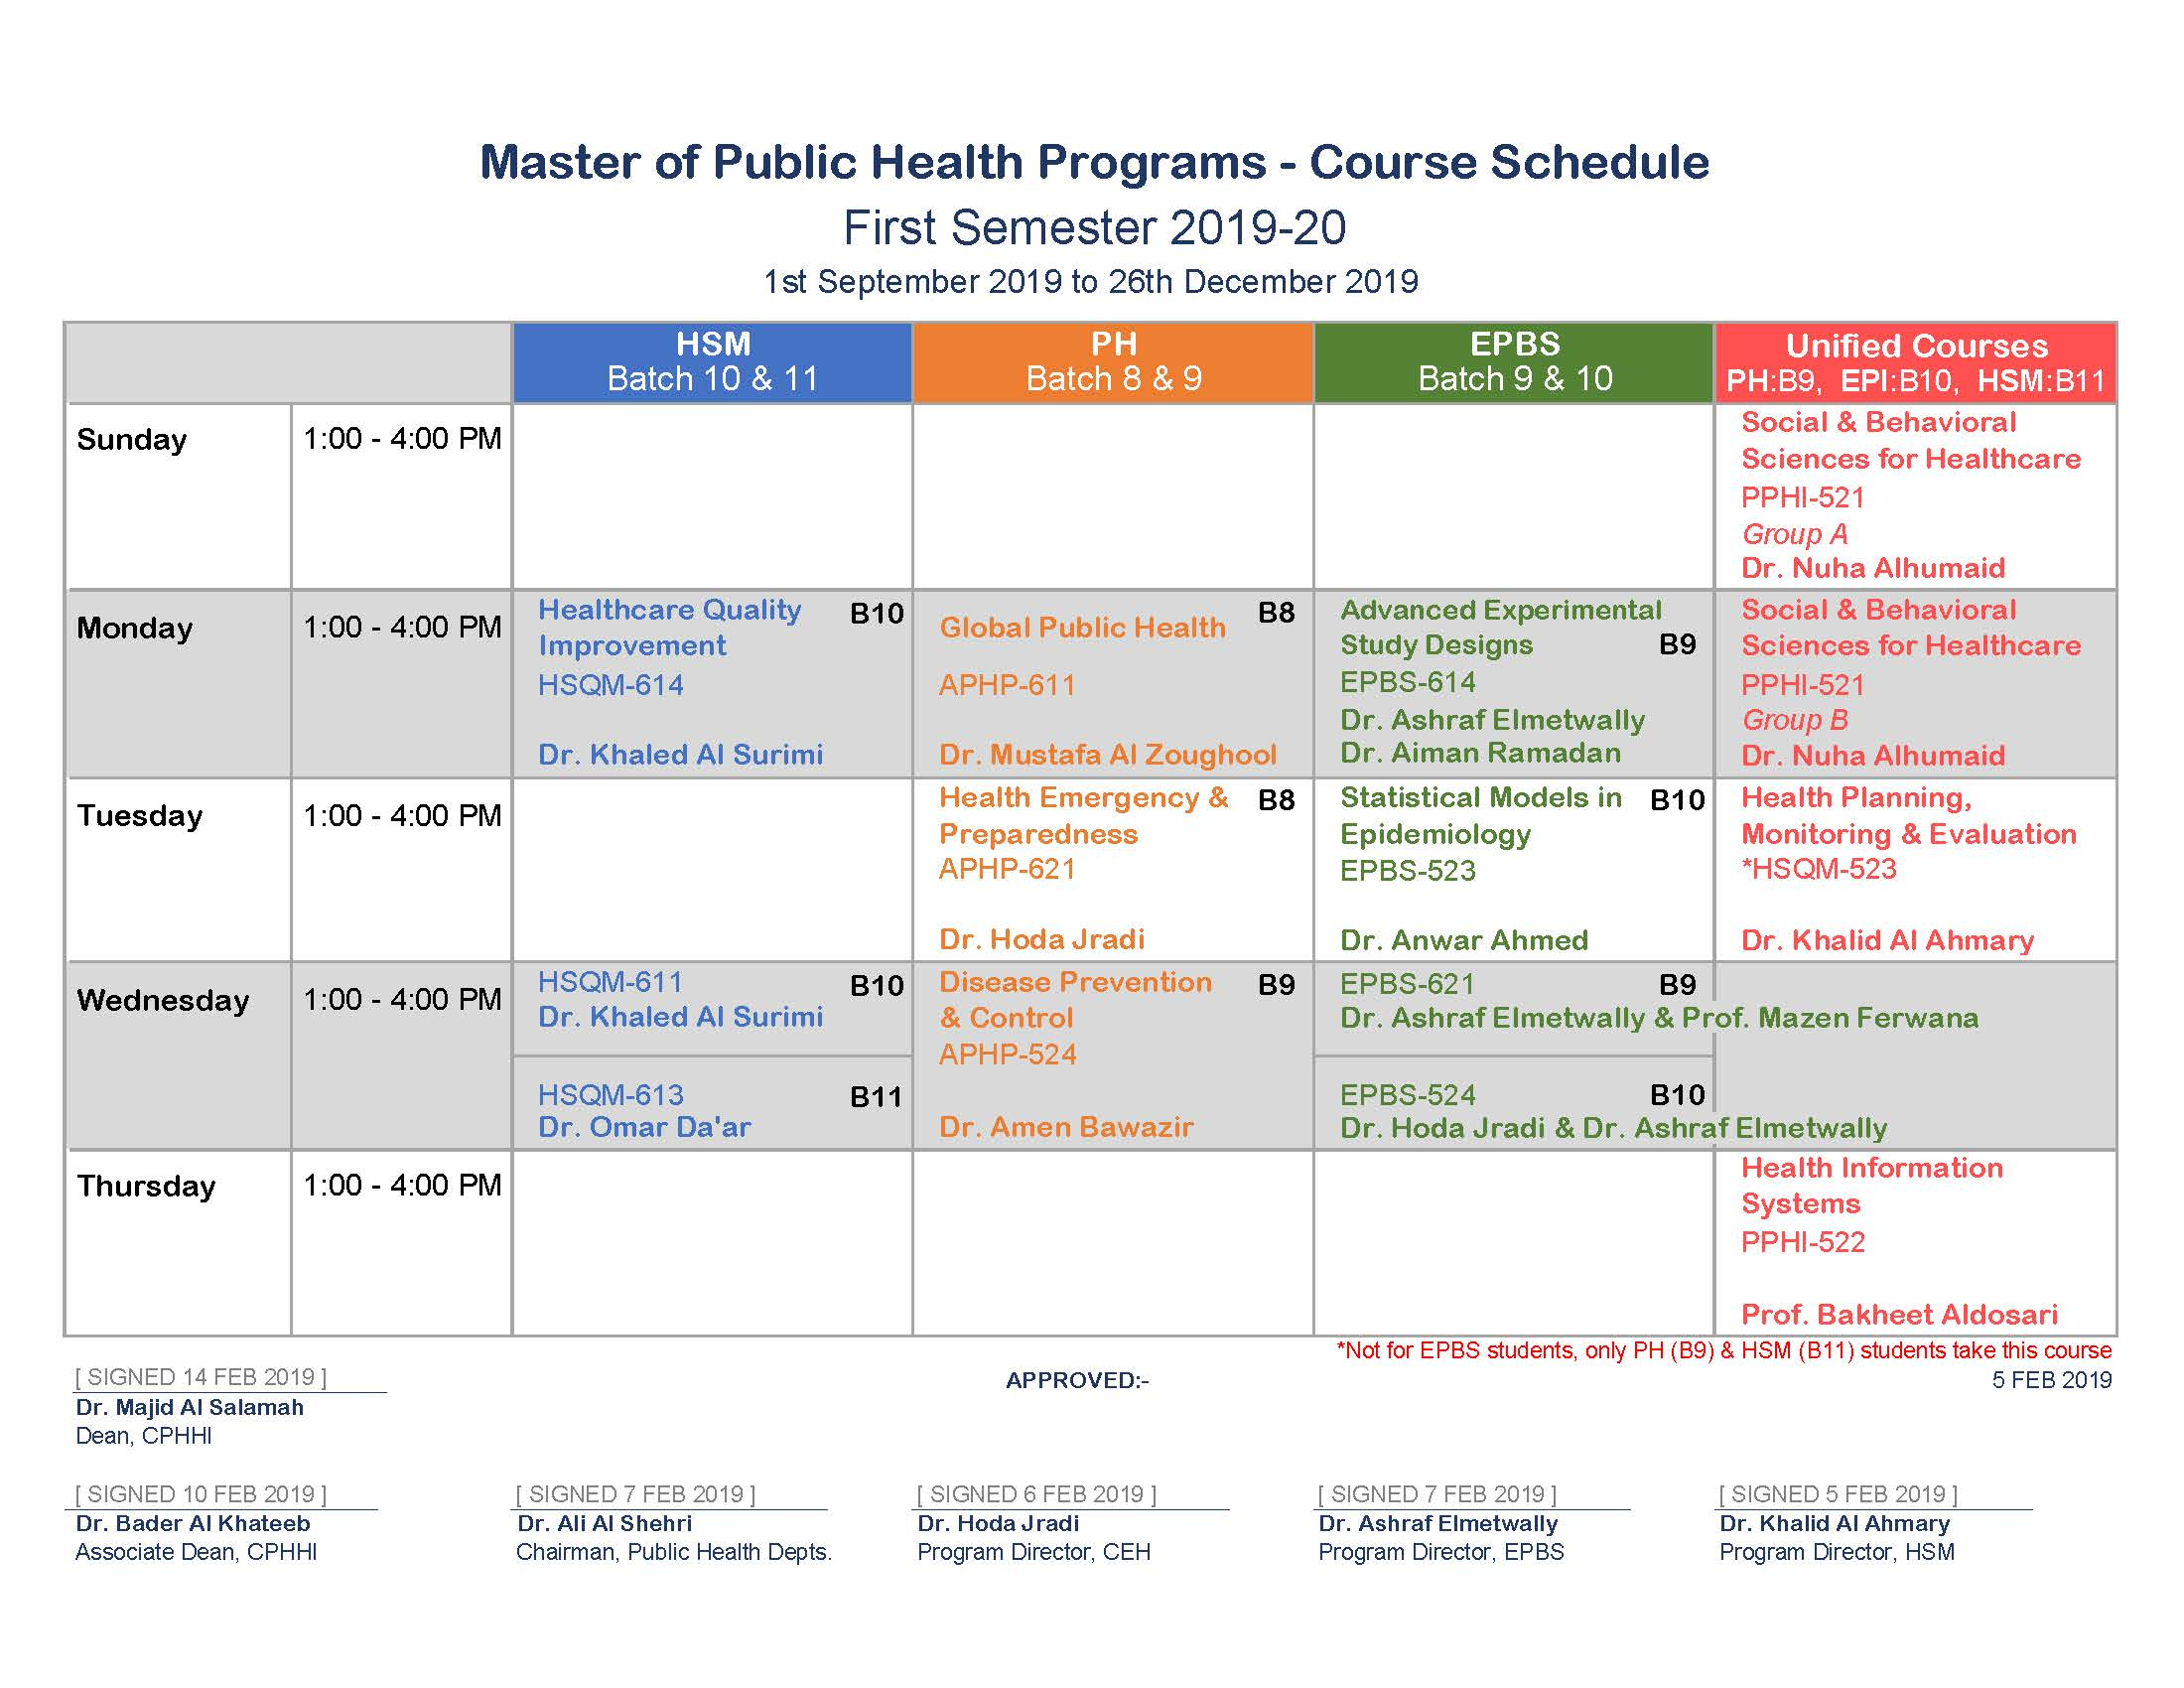 APPROVED PH Class Schedule -First Sem 2019-20 [Website].jpg